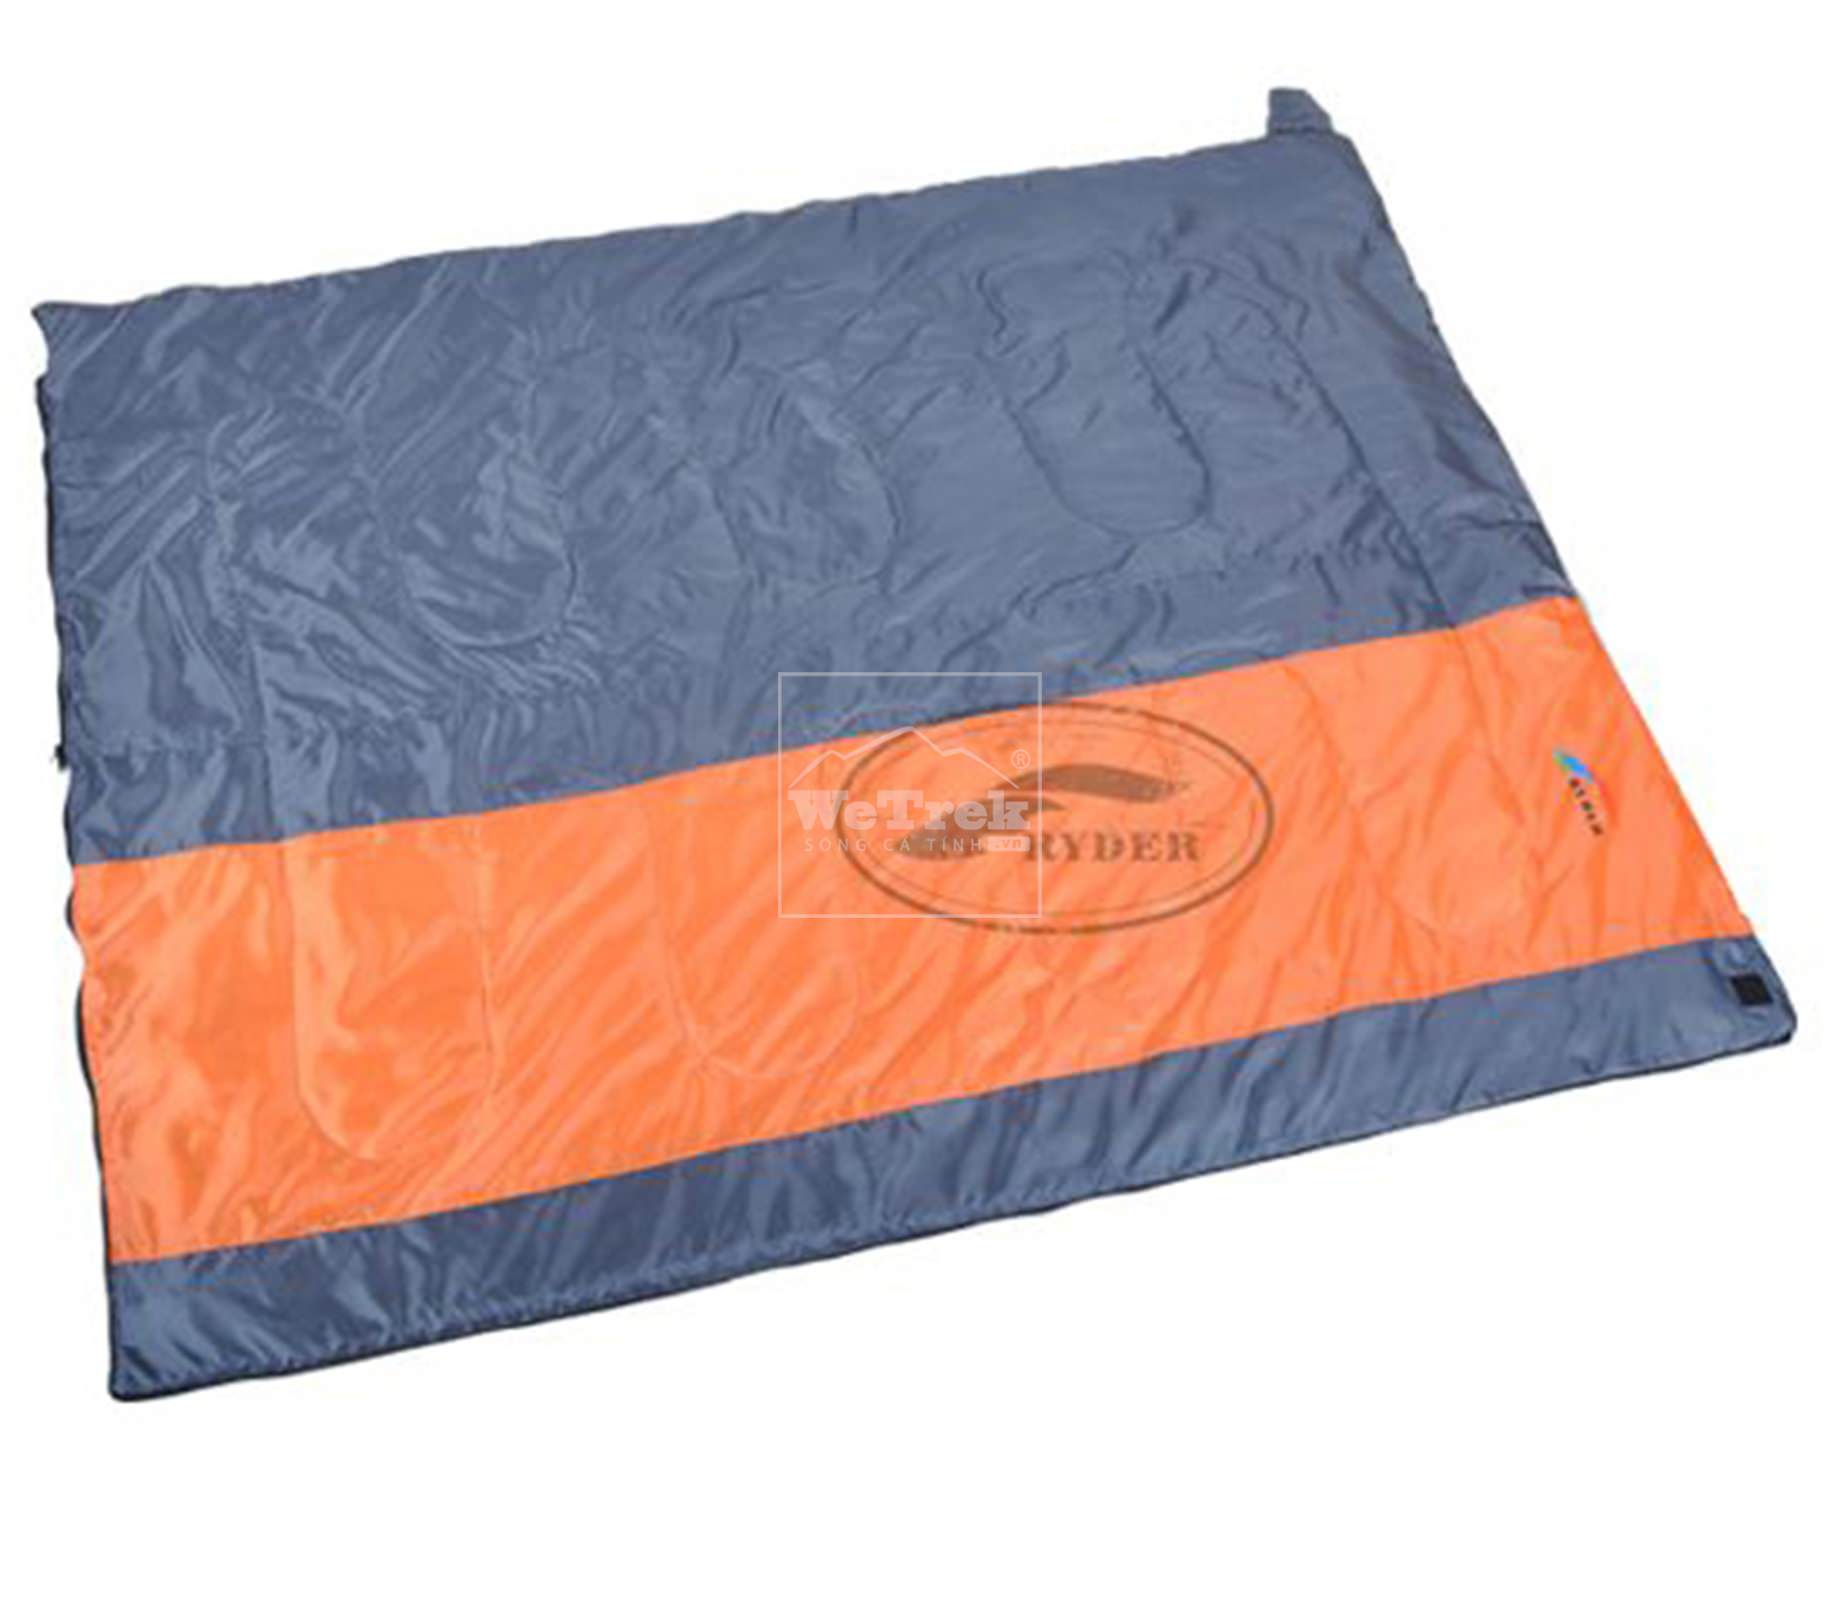 tui-ngu-ryder-envelope-sleeping-bag-d1001-orange-7482-wetrek.vn-2